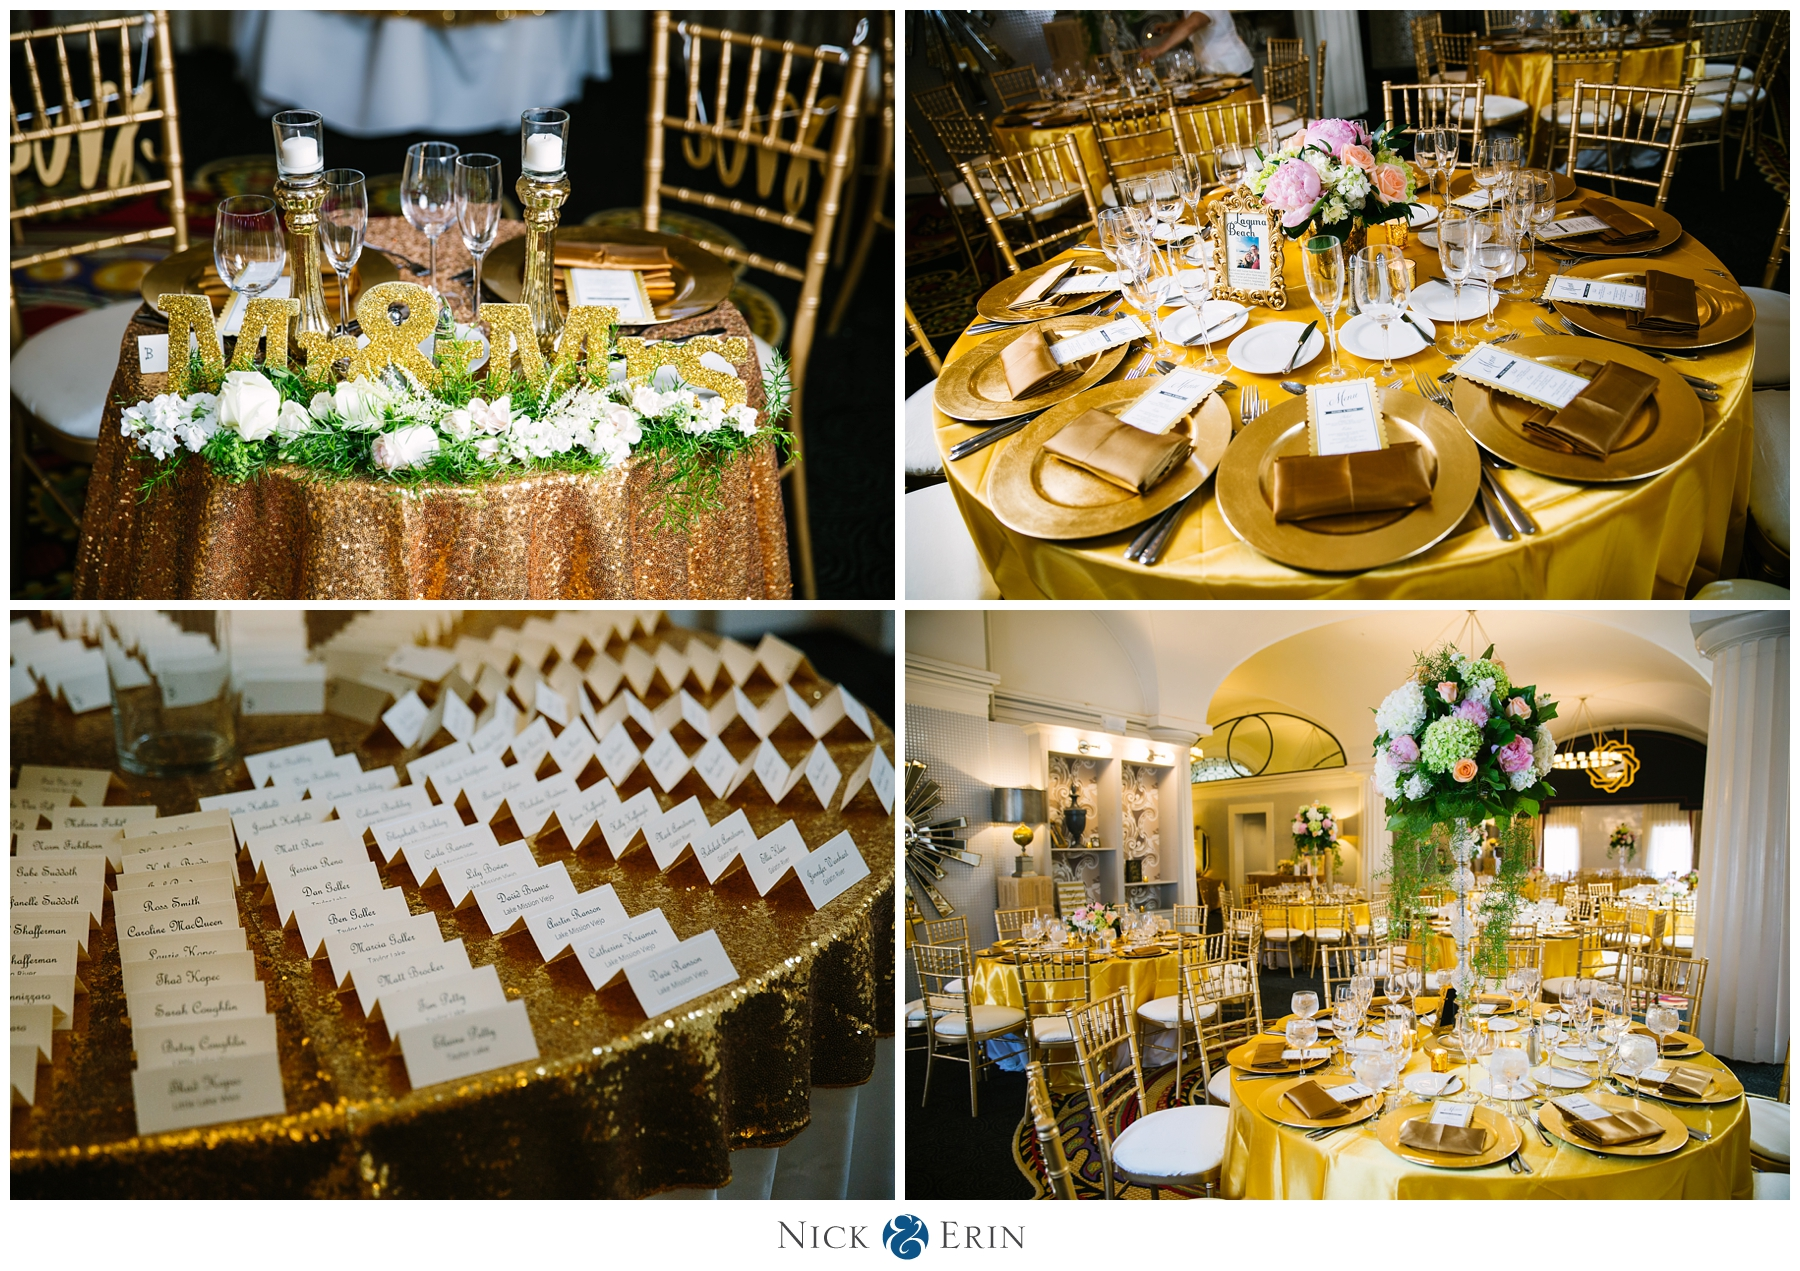 Donner_Photography_Washington DC Wedding_Rachel & Taylor_0047